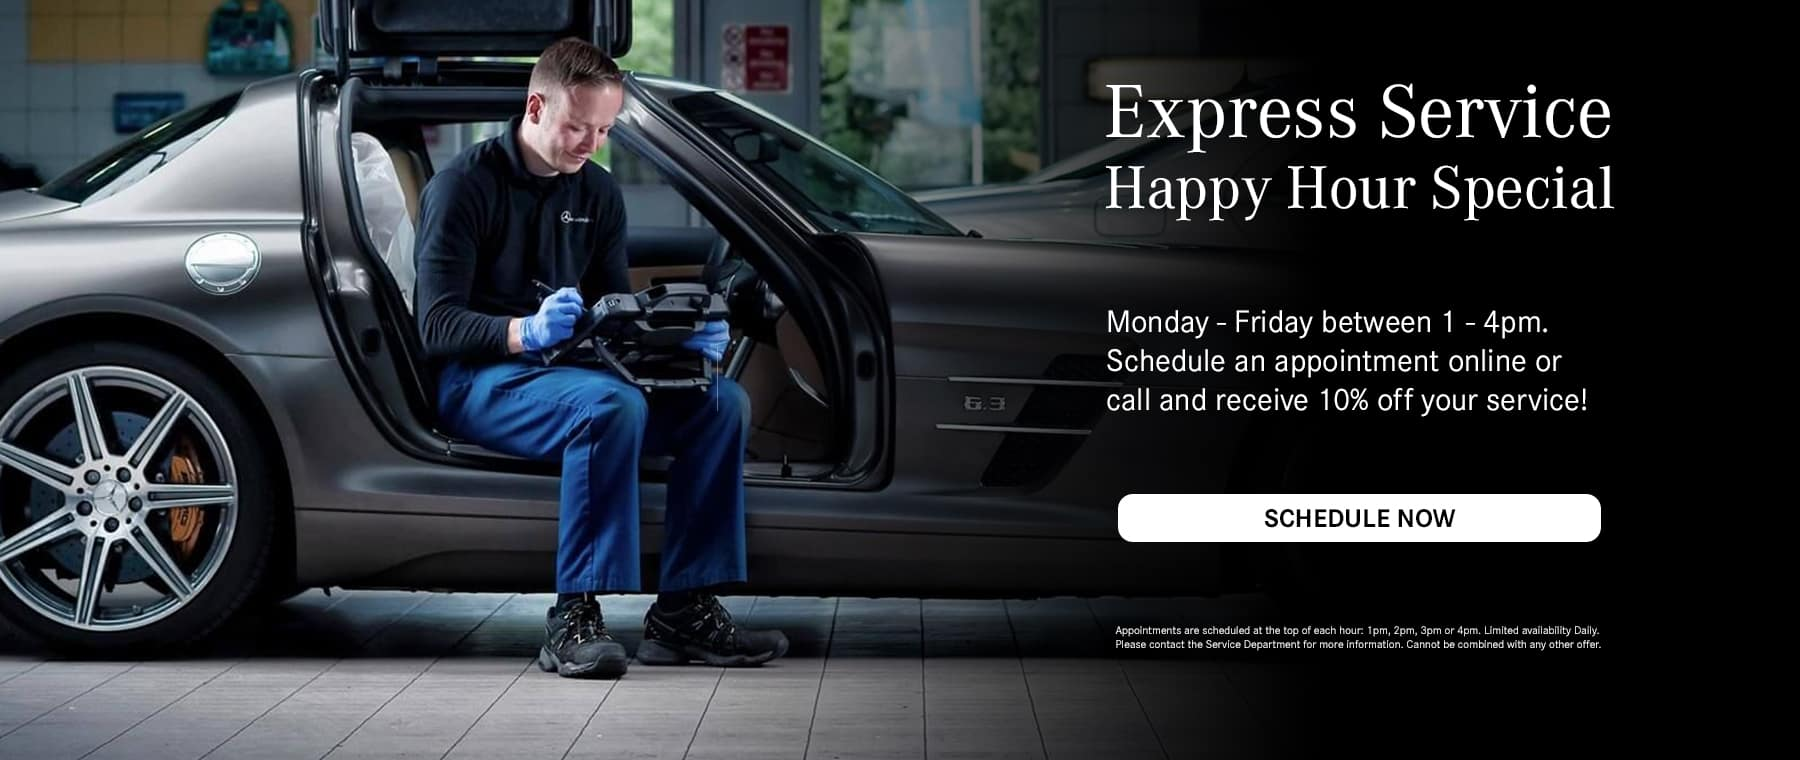 Express Service Happy Hour